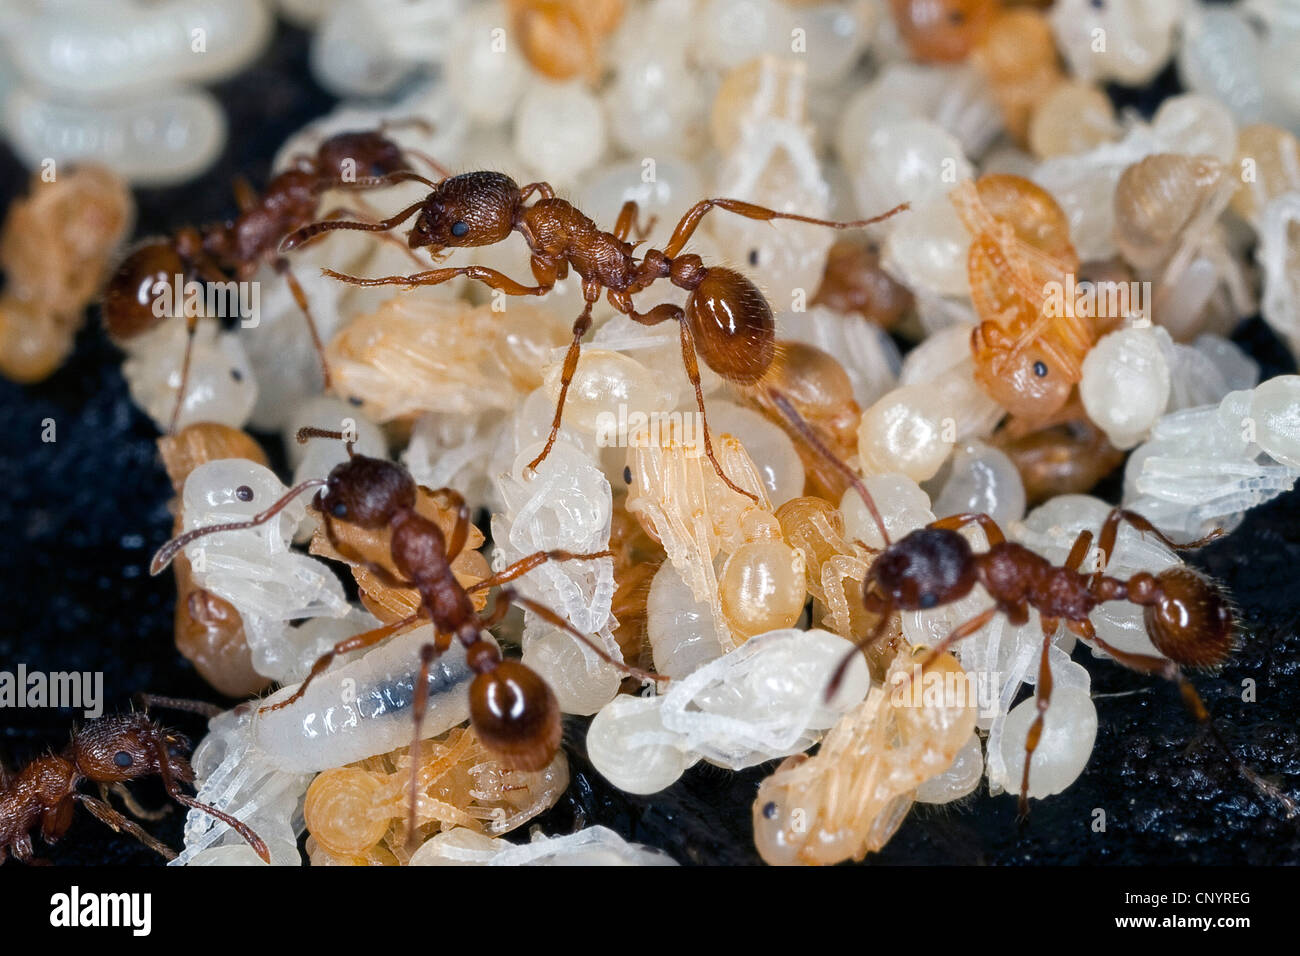 red myrmicine ant, red ant (Myrmica rubra), nest with workers, pupas and larvae, Germany - Stock Image